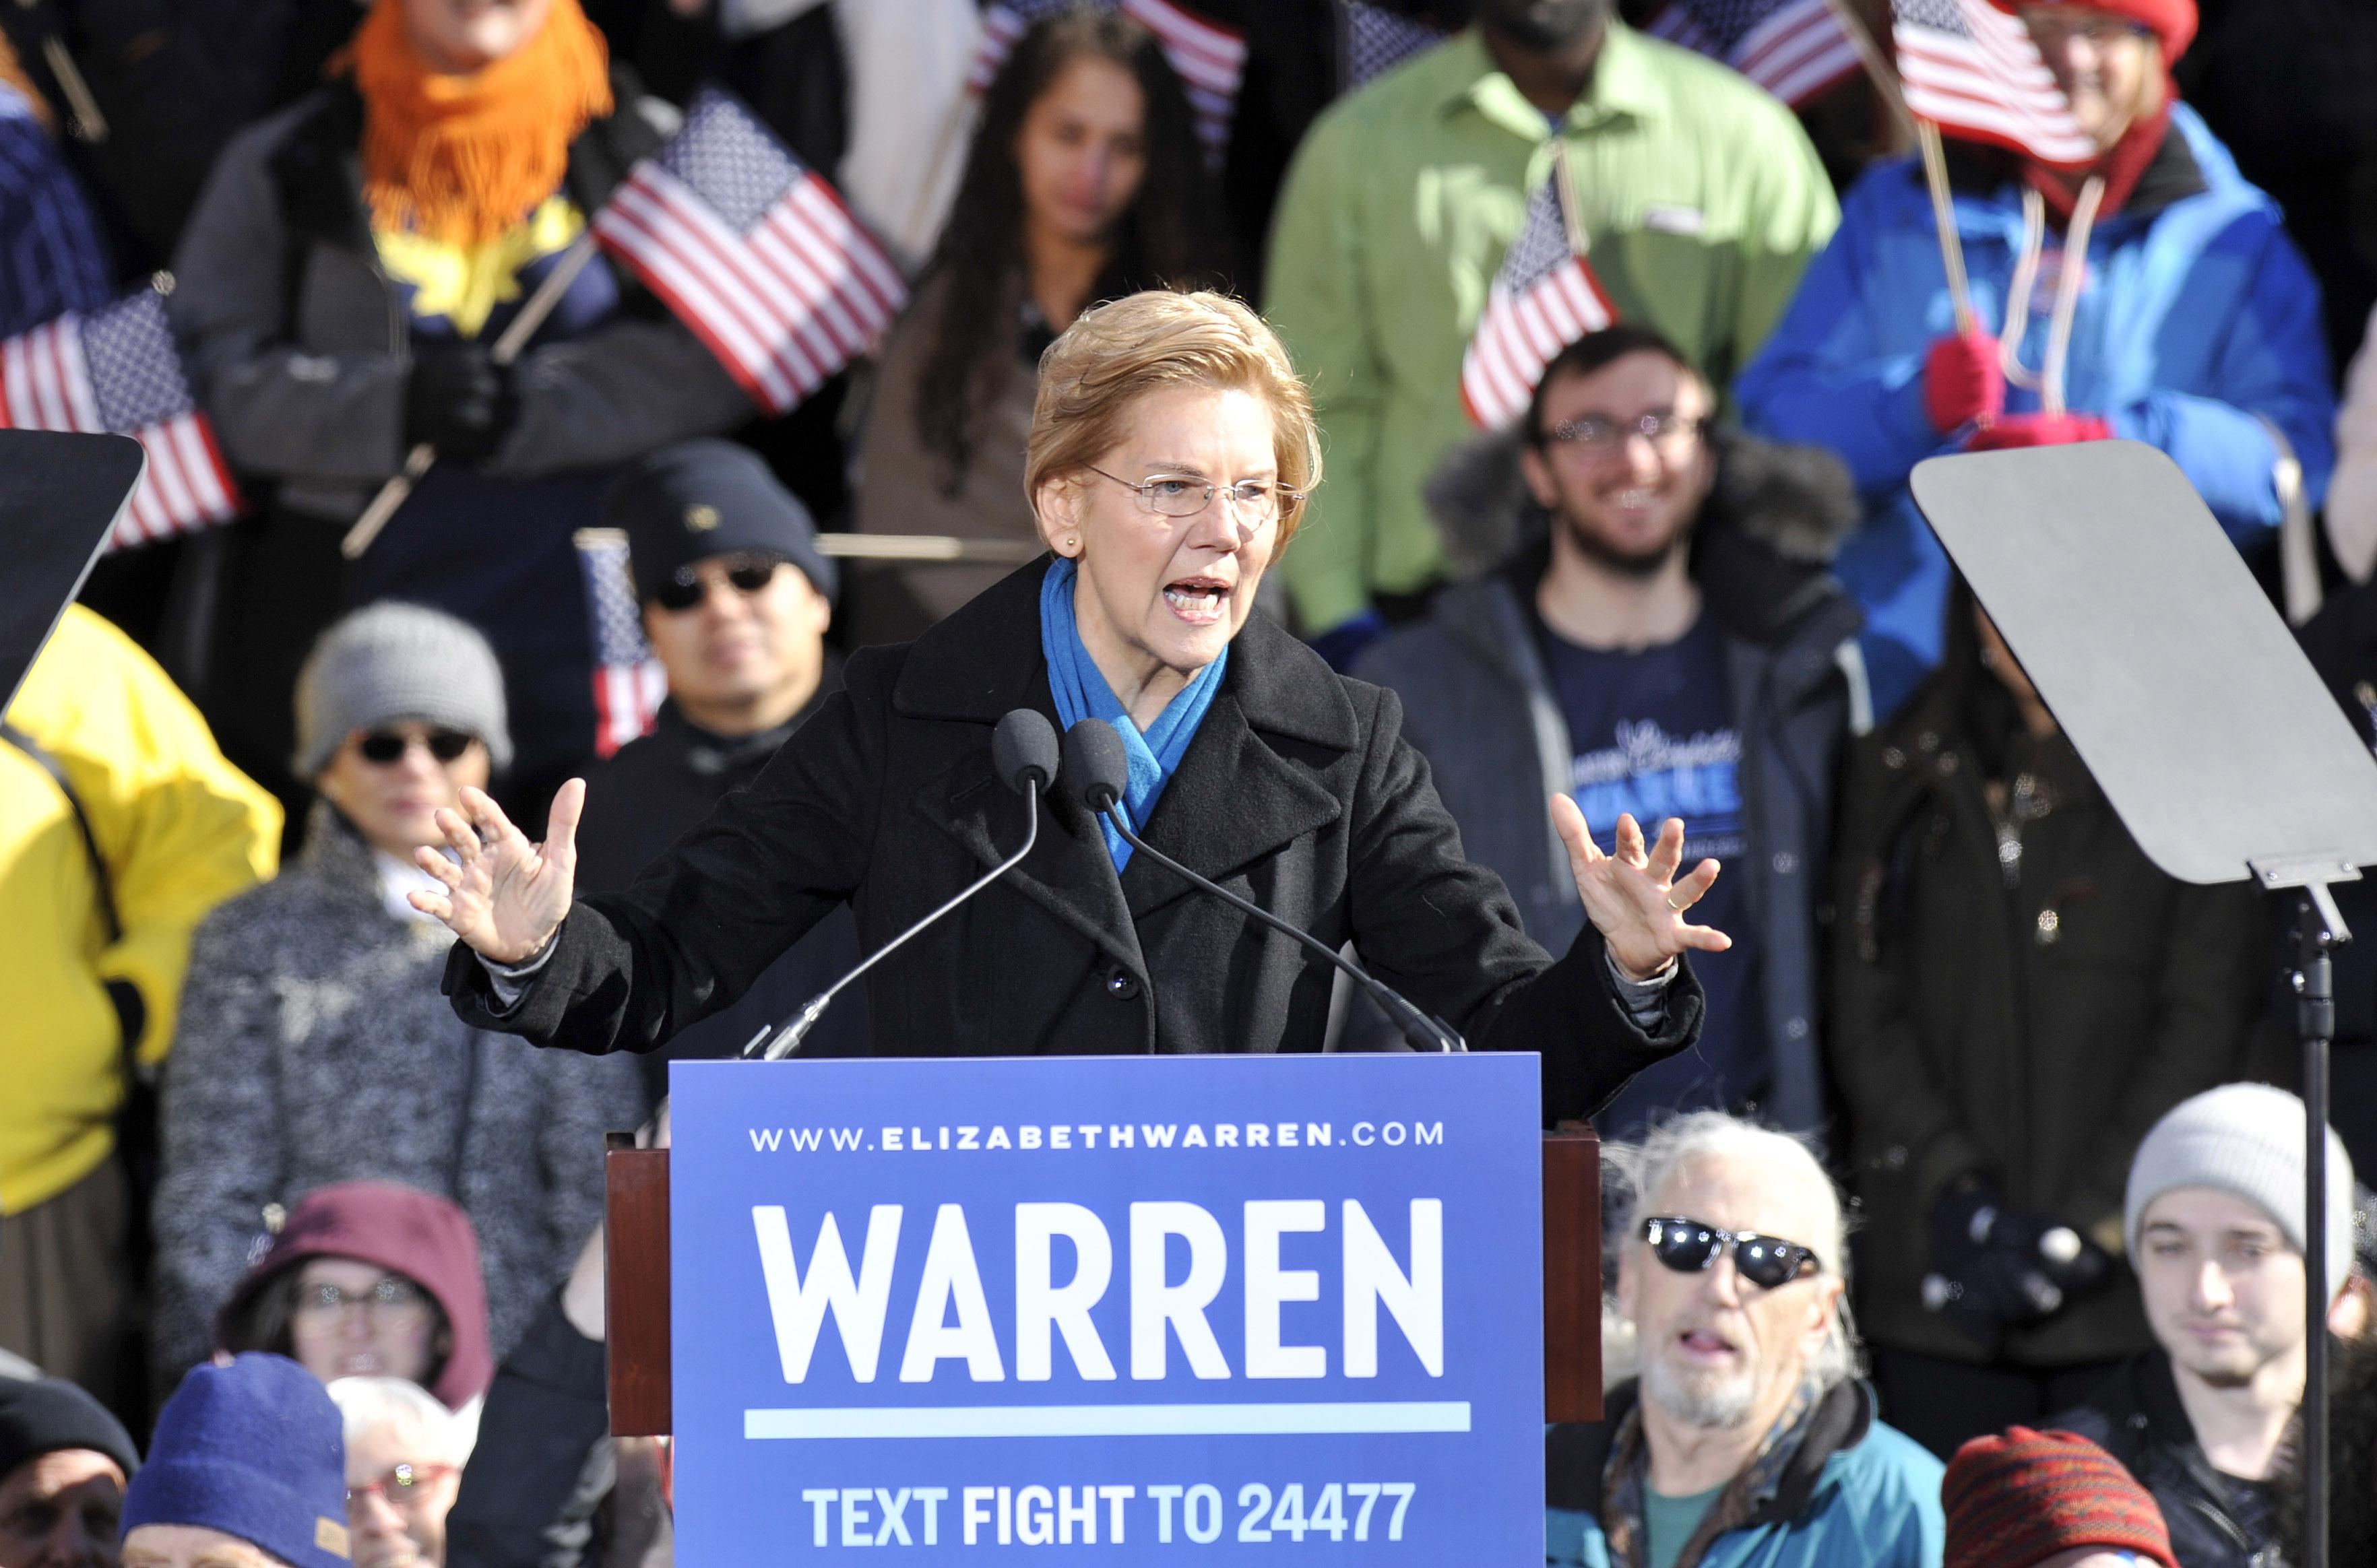 Senator Elizabeth Warren speaks during her presidential candidacy announcement event at the Everett Mills in Lawrence, MA on February 9, 2019.